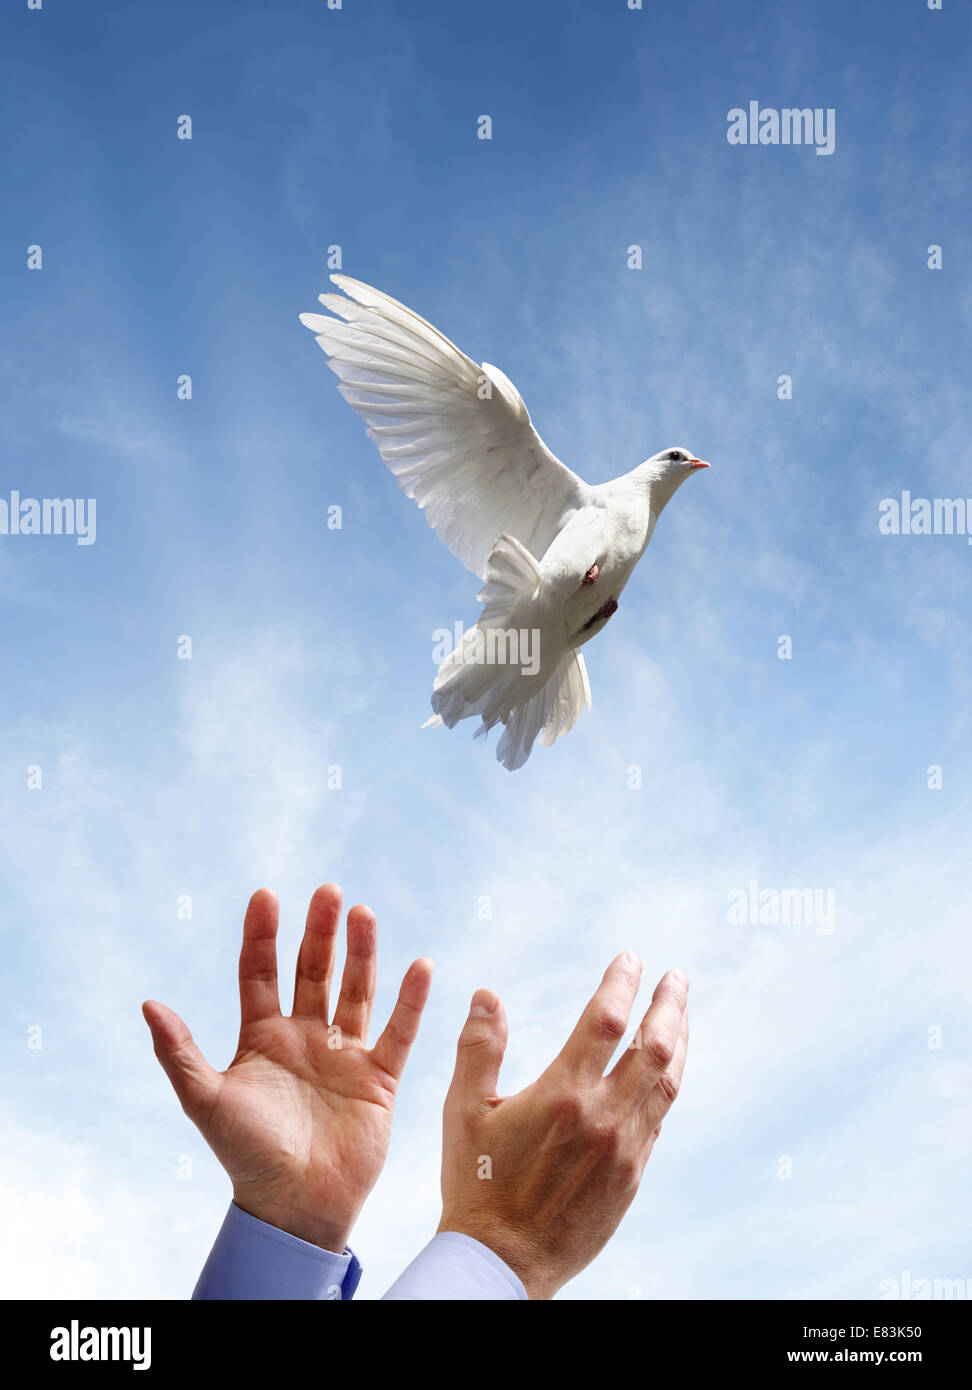 Freedom, peace and spirituality - Stock Image